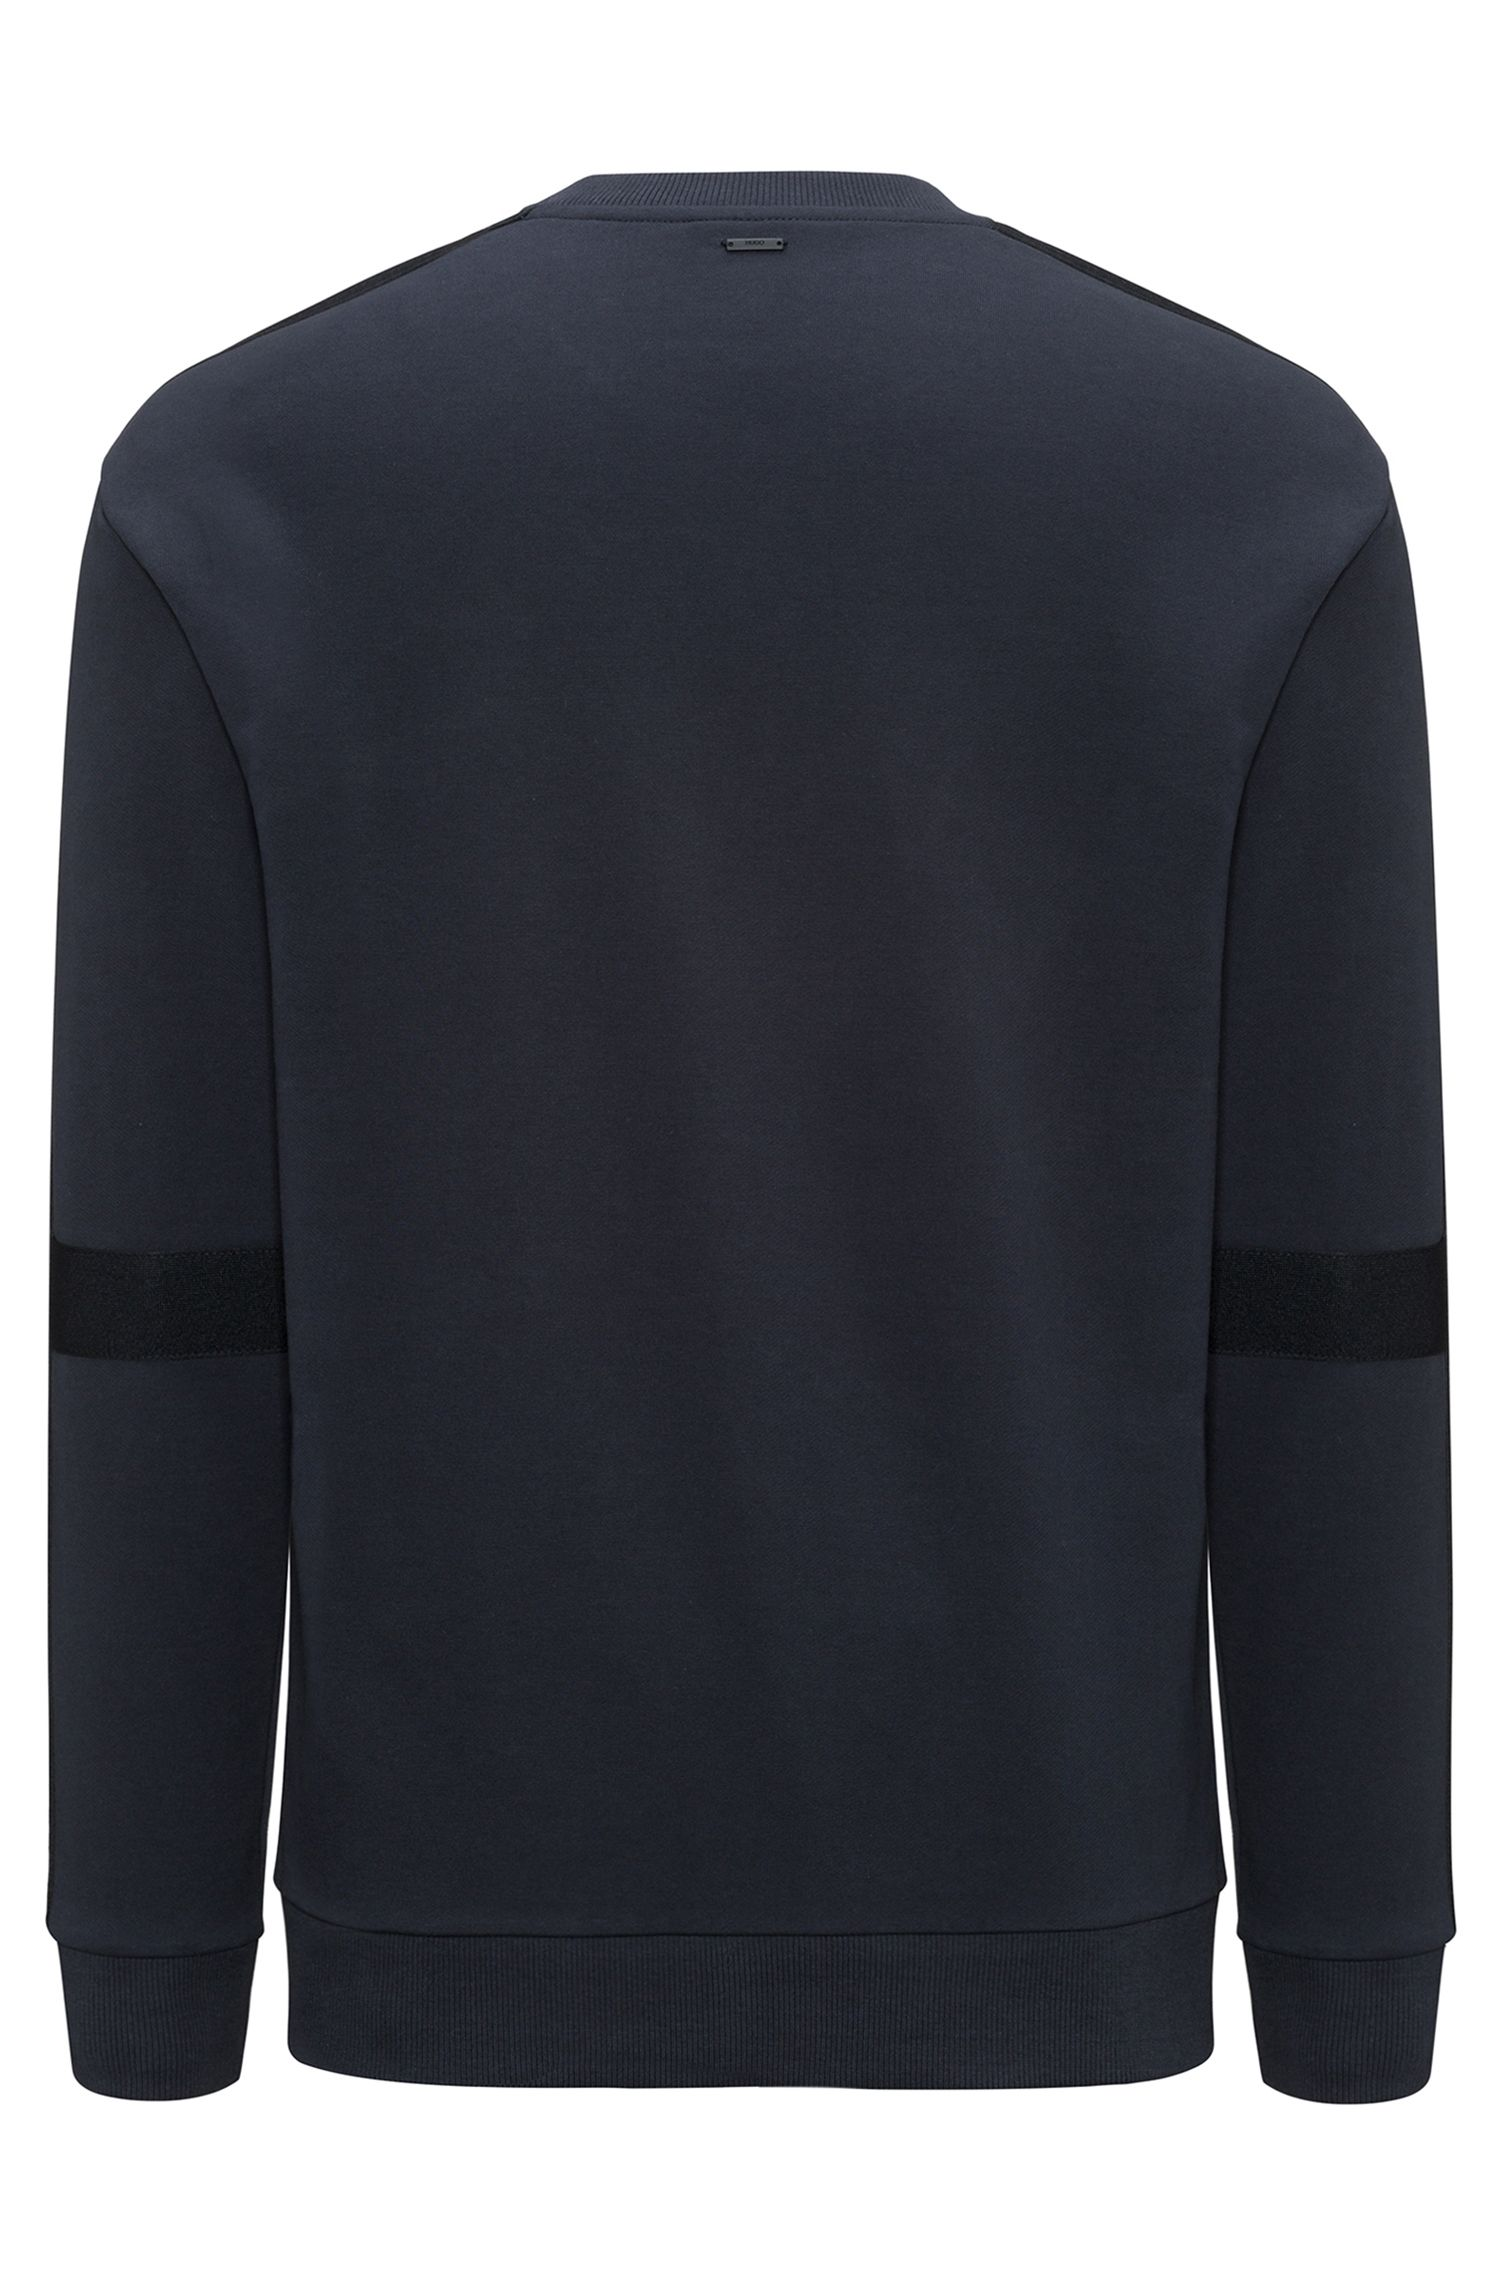 Hugo Boss - Sweat Oversized Fit à empiècements ton sur ton - 4